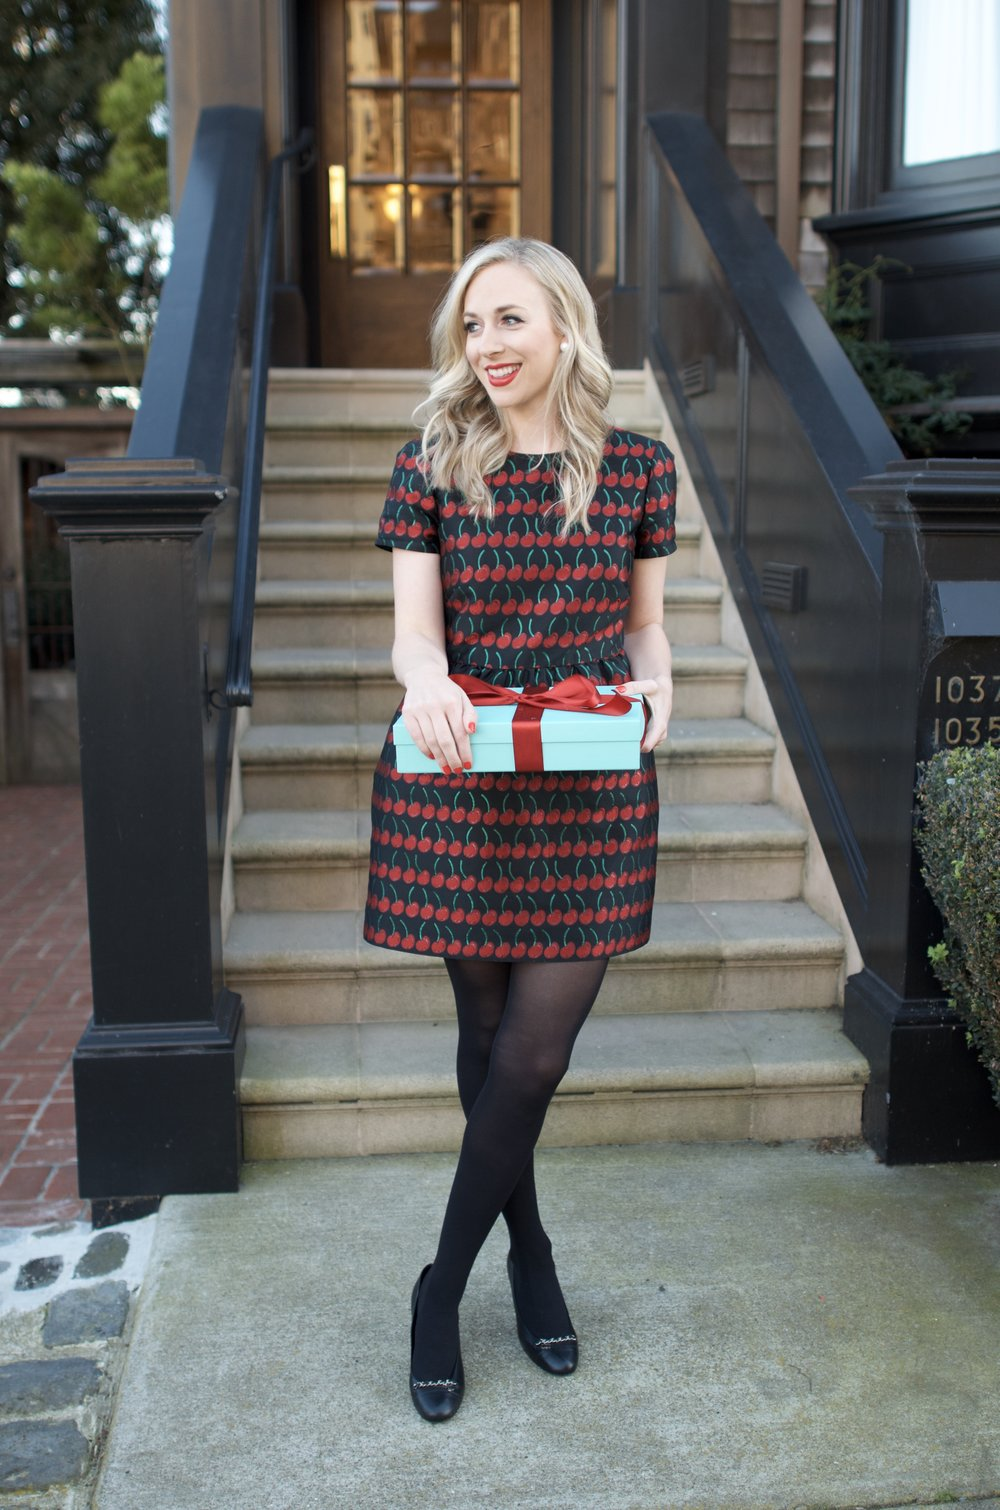 caroline-curran-san-francisco-blogger